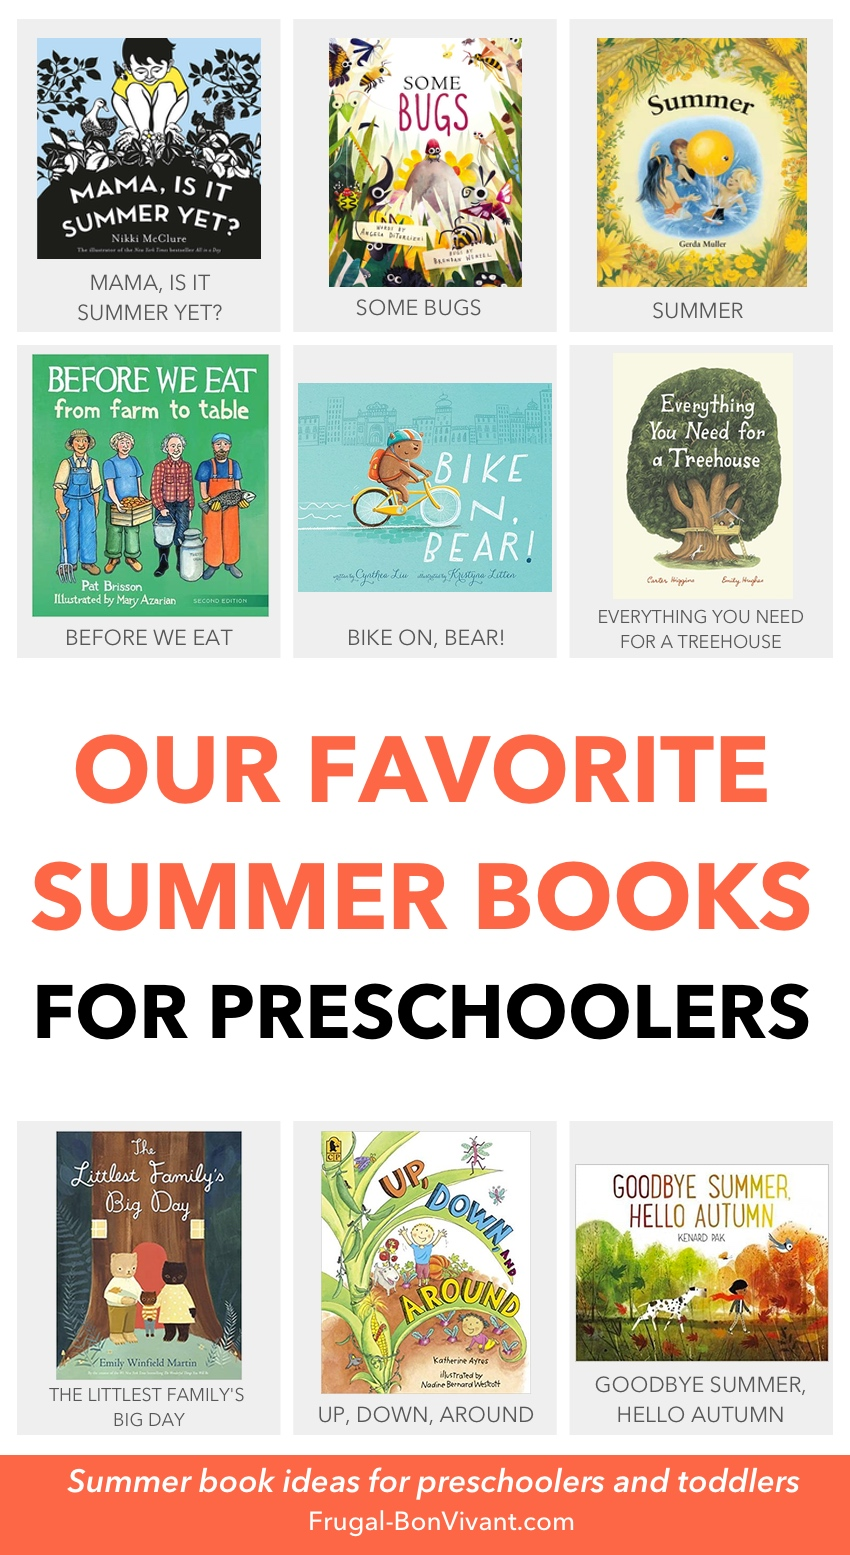 summer books for preschoolers, books about gardening, outdoors, bugs, ice cream, the beach, biking, harvest food and more